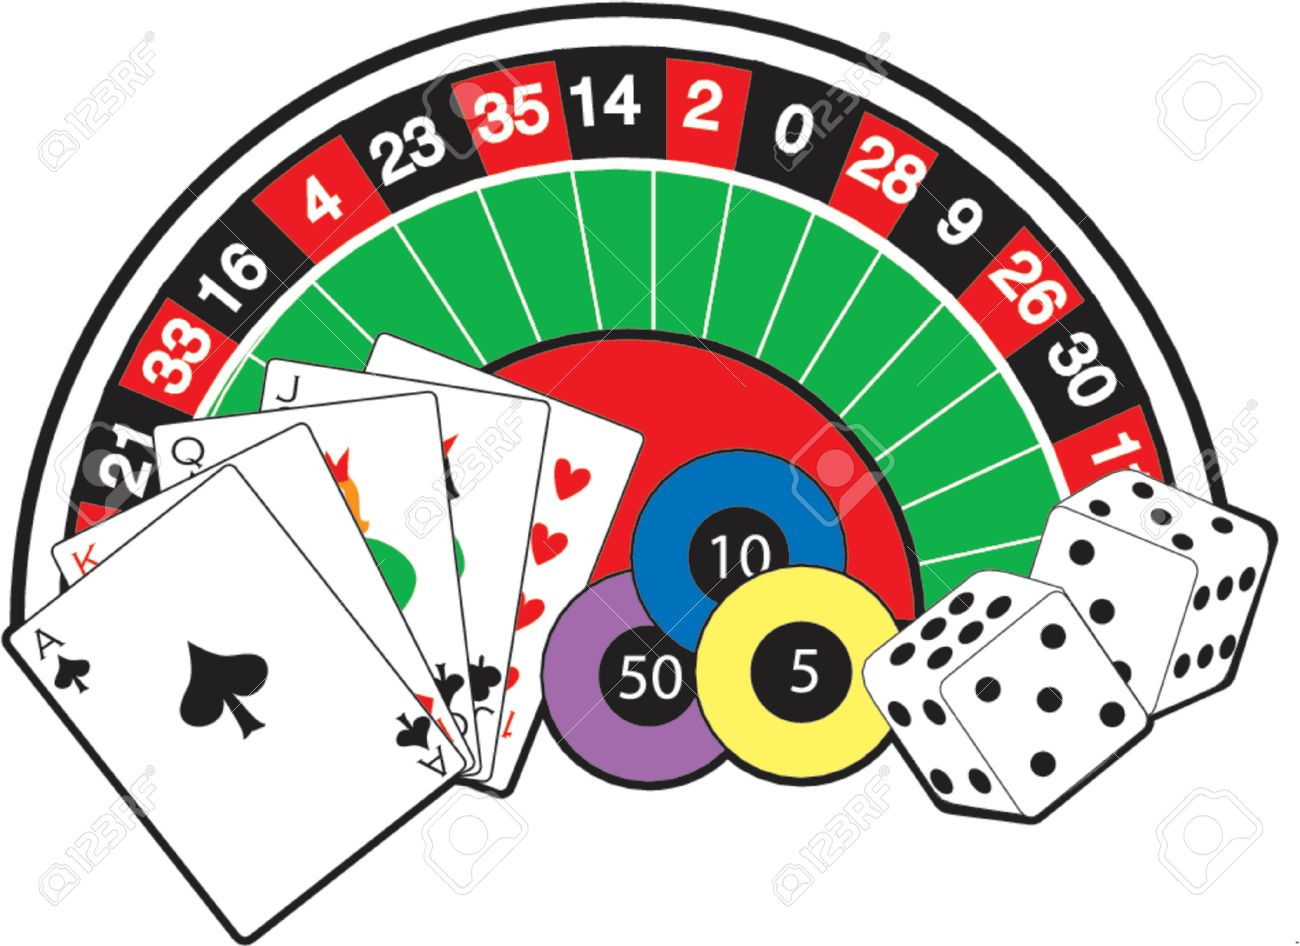 Roulette Wheel Cards Dice And Poker Chips Royalty Free Cliparts Vectors And Stock Illustration Image 1029282